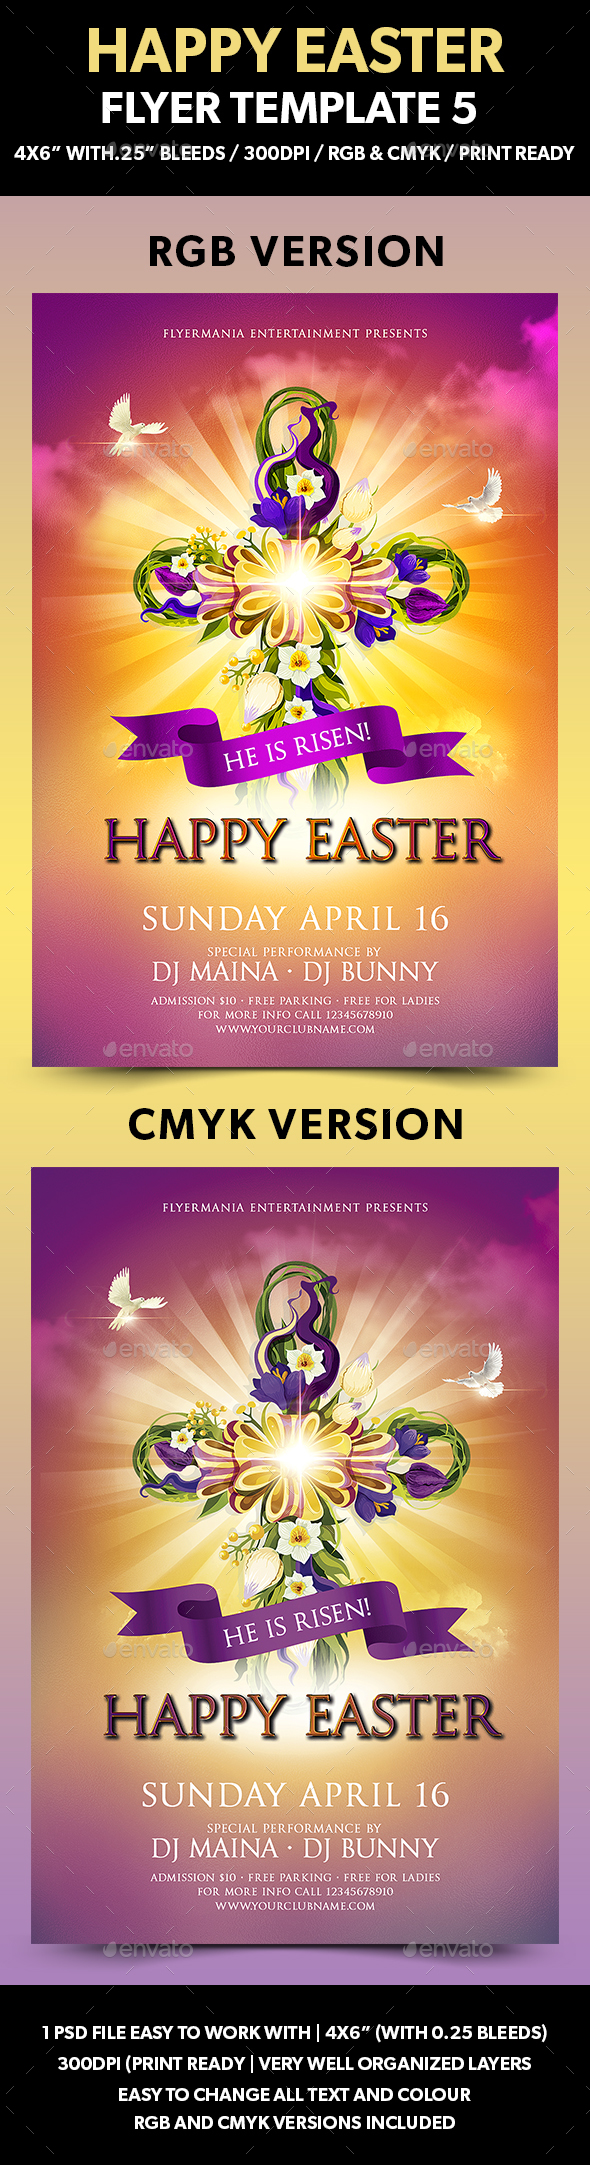 Happy Easter Flyer Template 5 - Flyers Print Templates